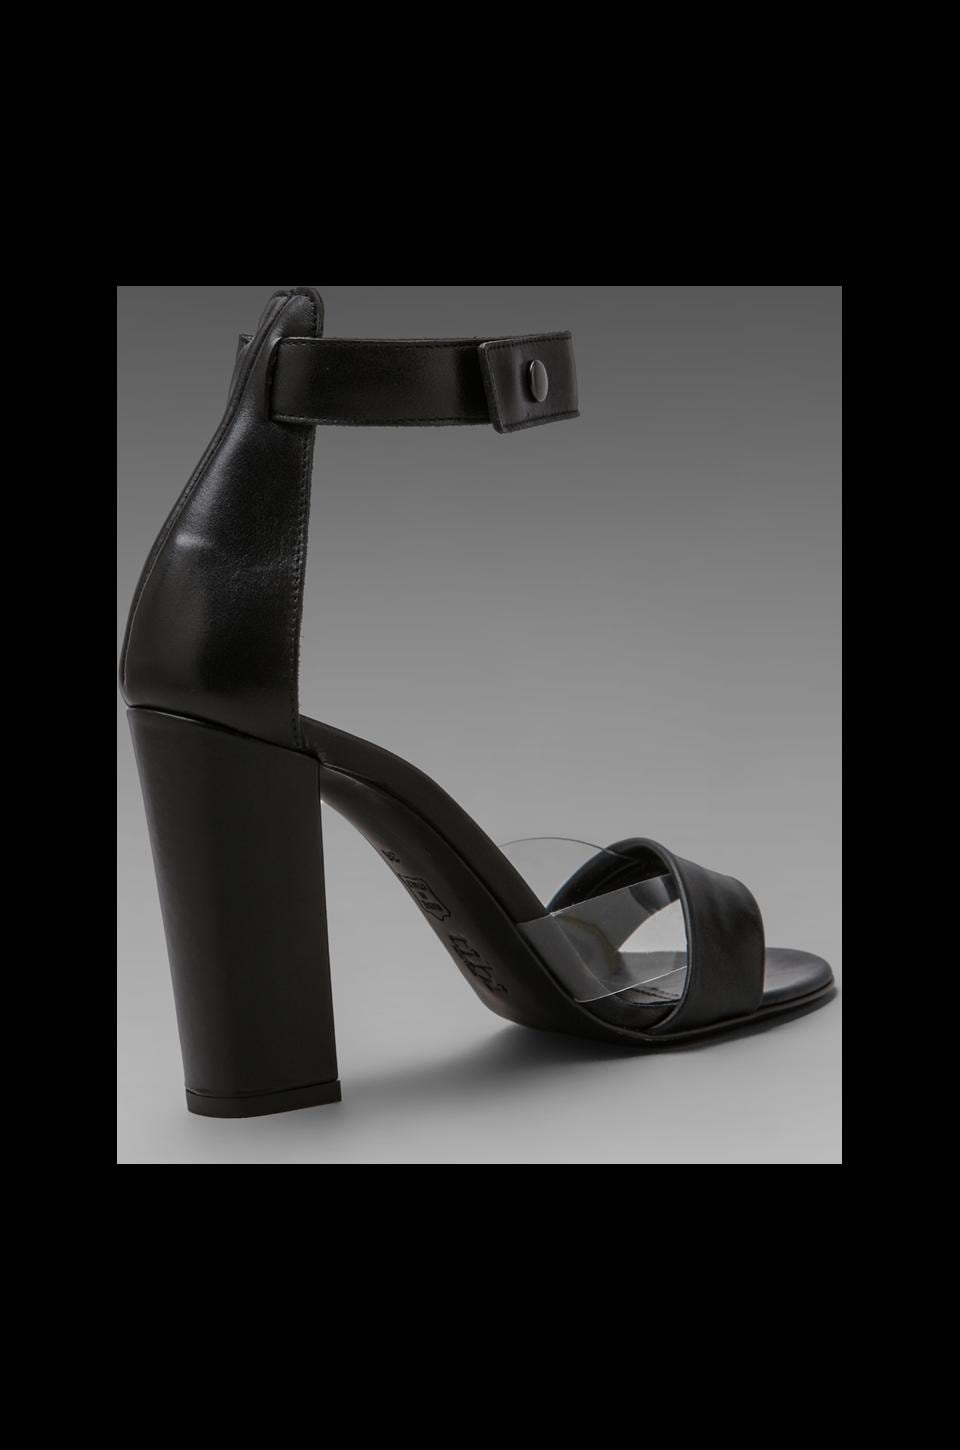 Tibi Edita Heels in Black